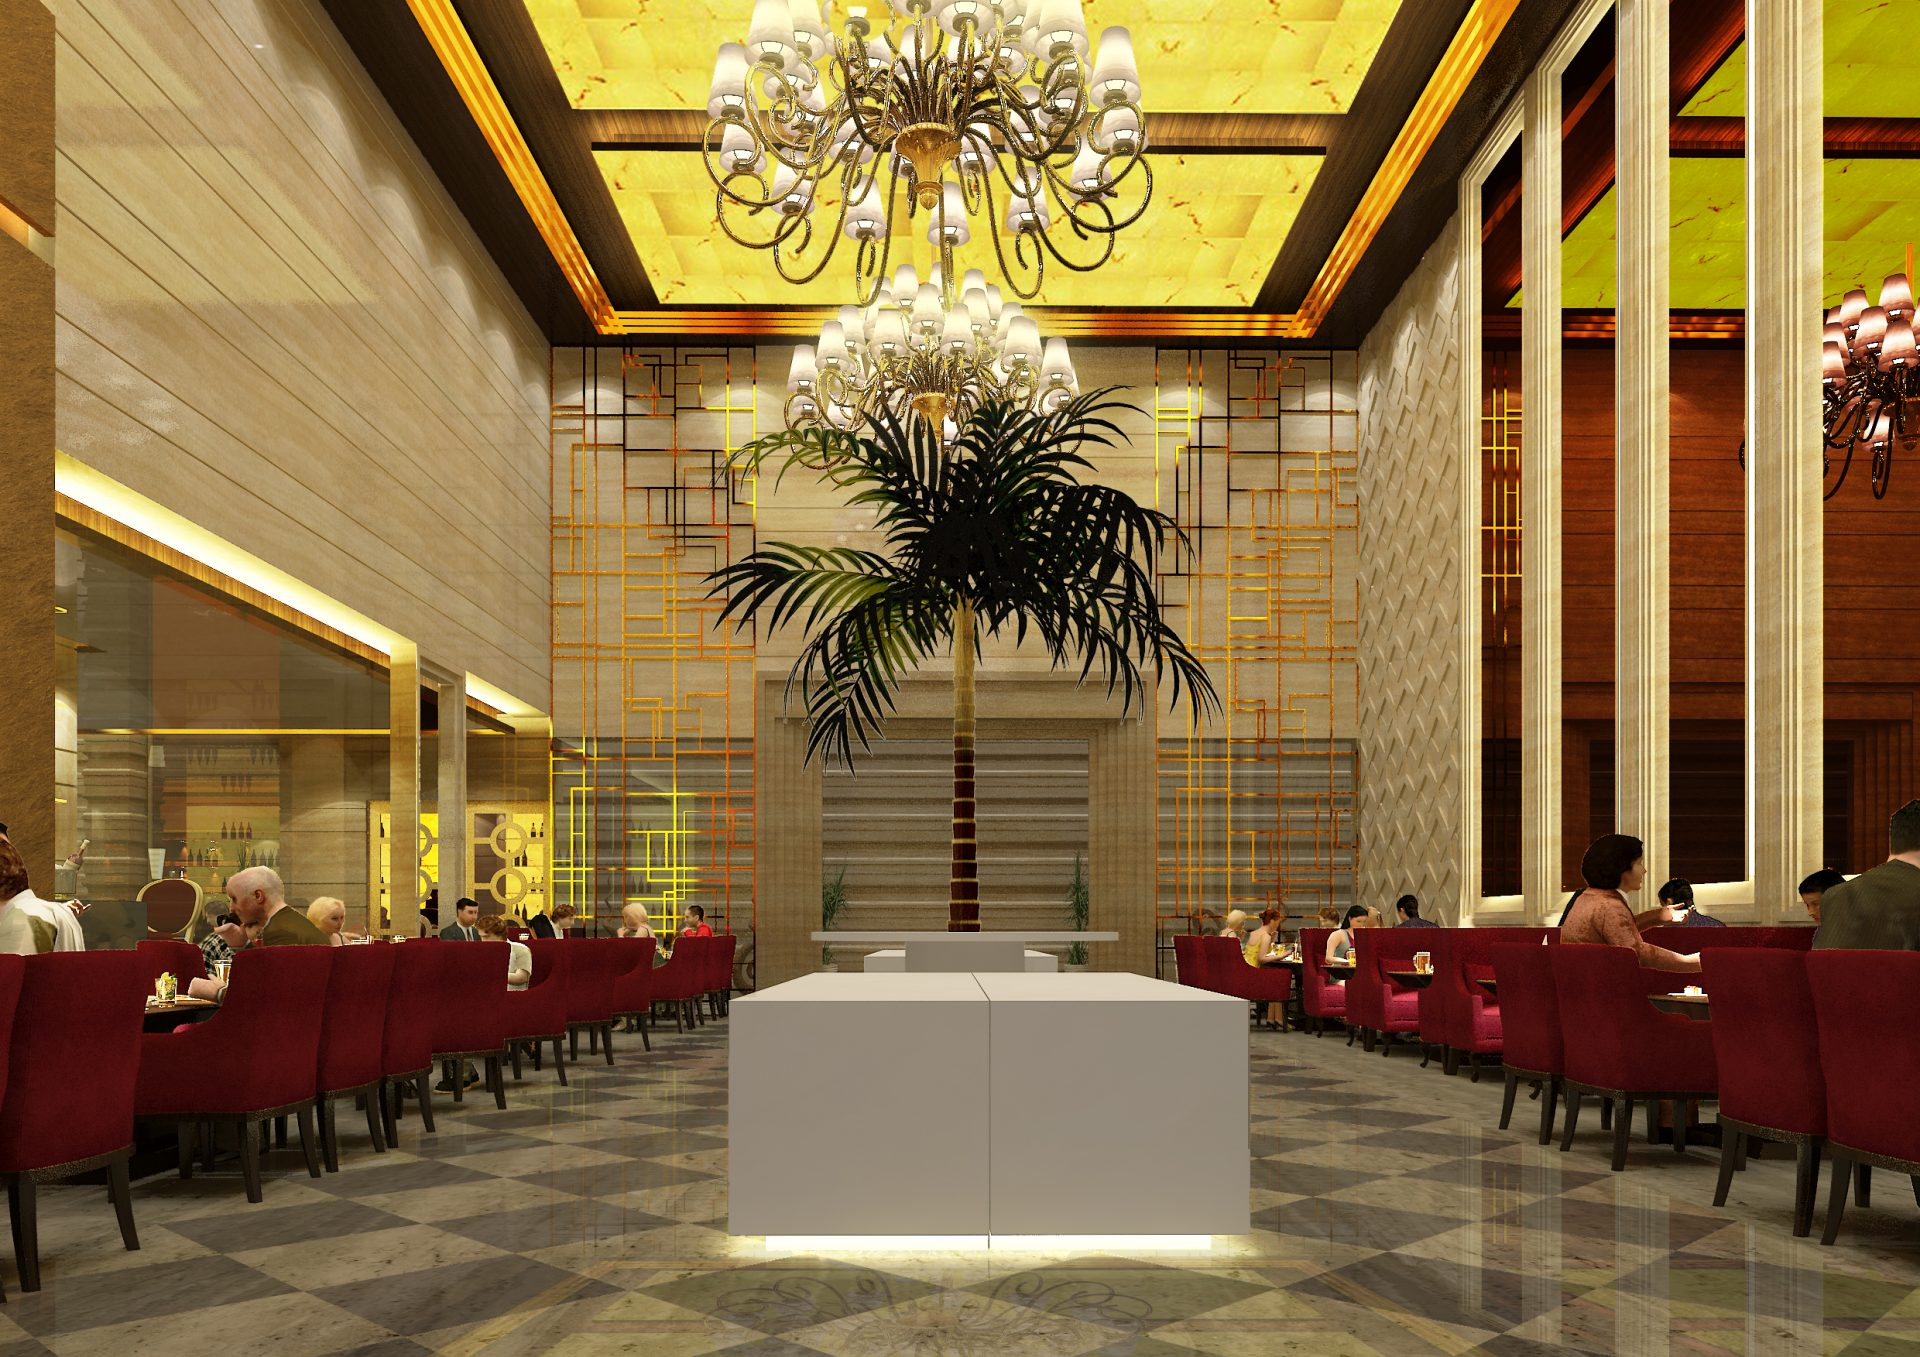 How to find the right Architecture or Interior Design firm in Delhi